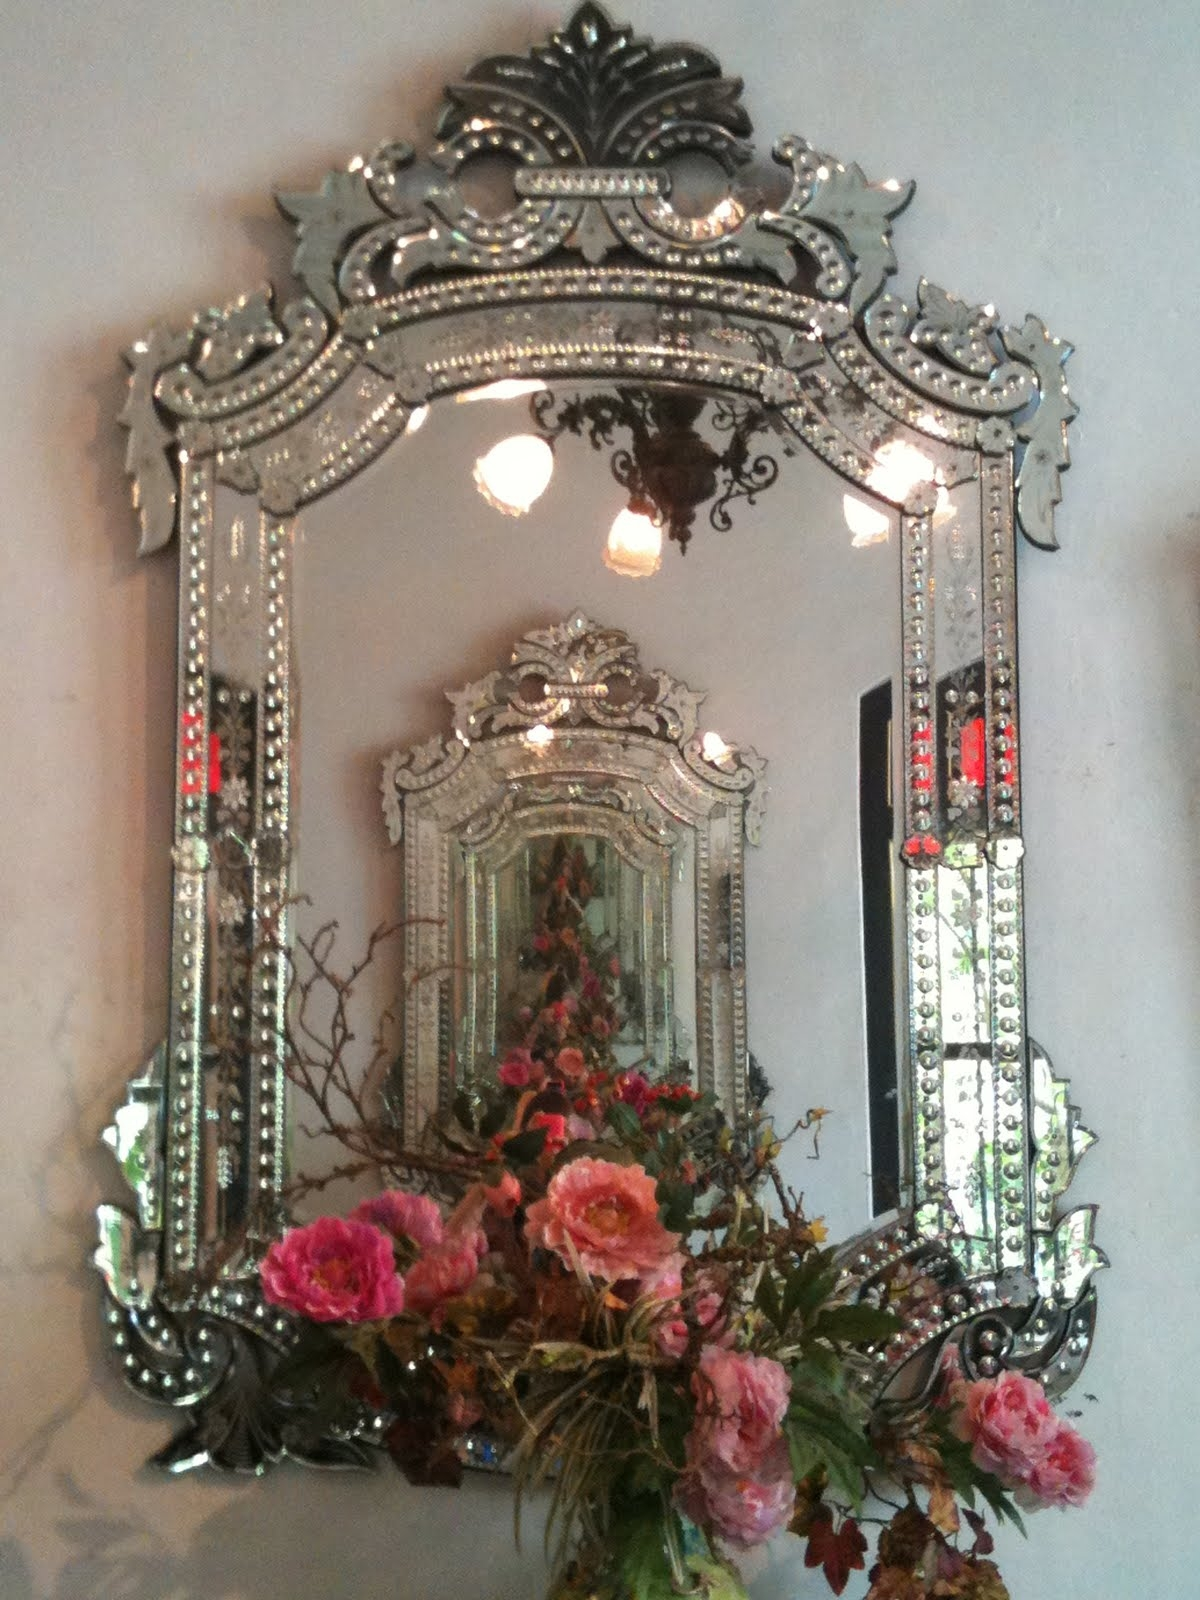 Venetian Mirror Ami The Prettiest Asked The Rose Ohhhh I Love With Regard To Antique Venetian Mirrors For Sale (Image 15 of 15)